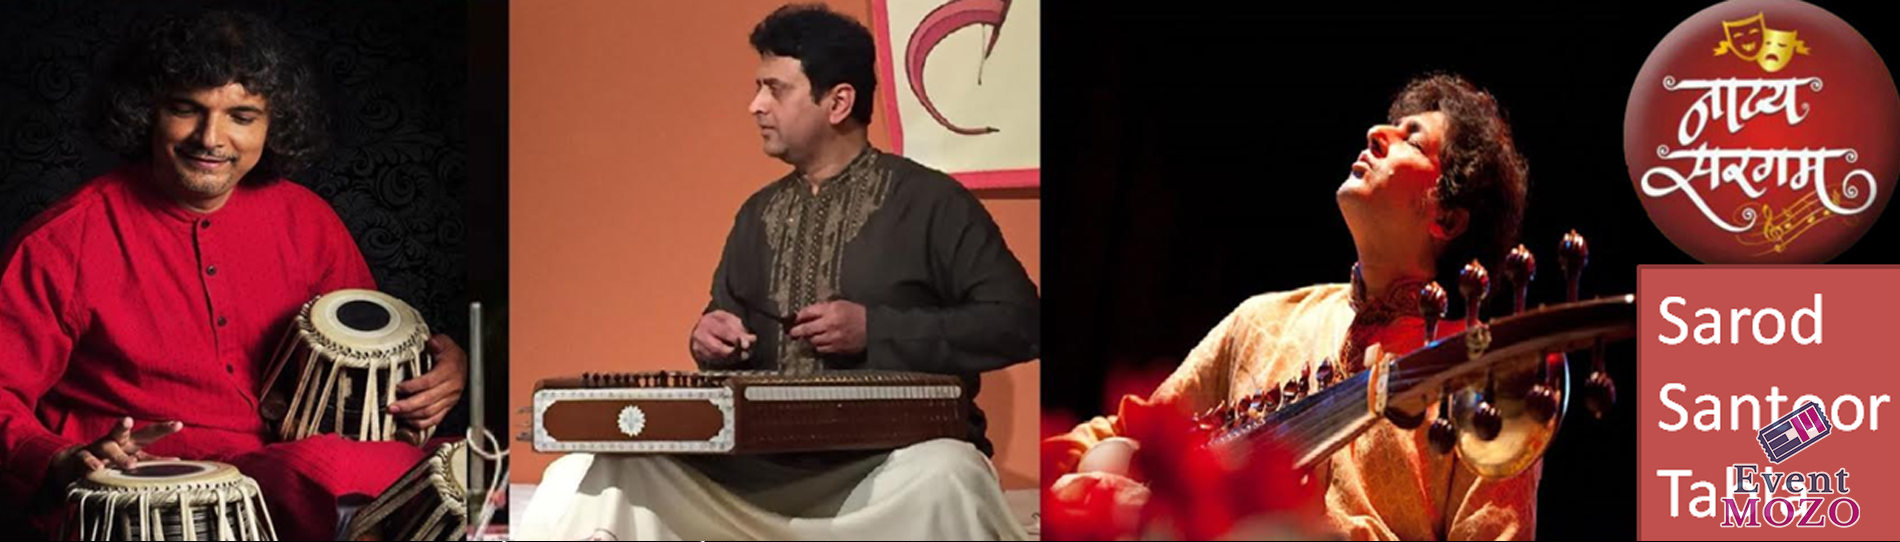 EventMozo Twiligh Melodies - Partho Sarathy on Sarod, Madan Oak on S....